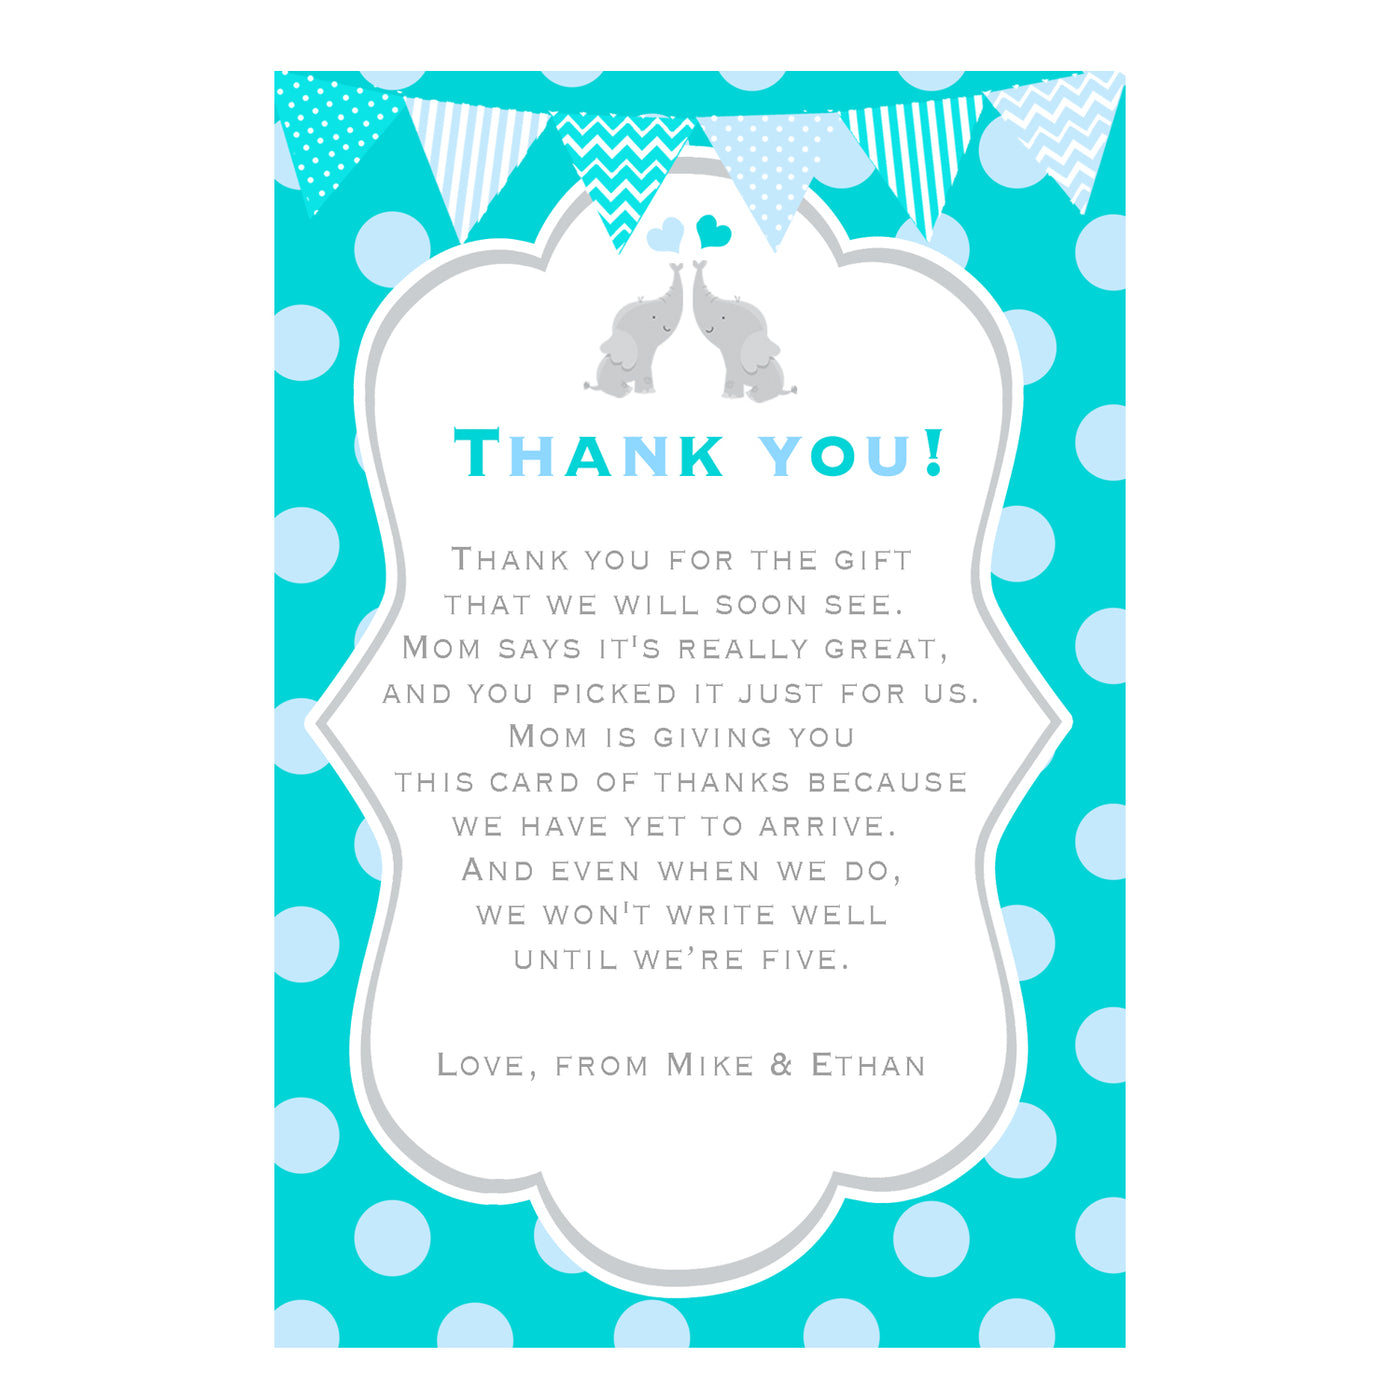 Thank You Letter For Baby Shower.30 Cards Teal Twins Elephant Thank You Note Baby Shower